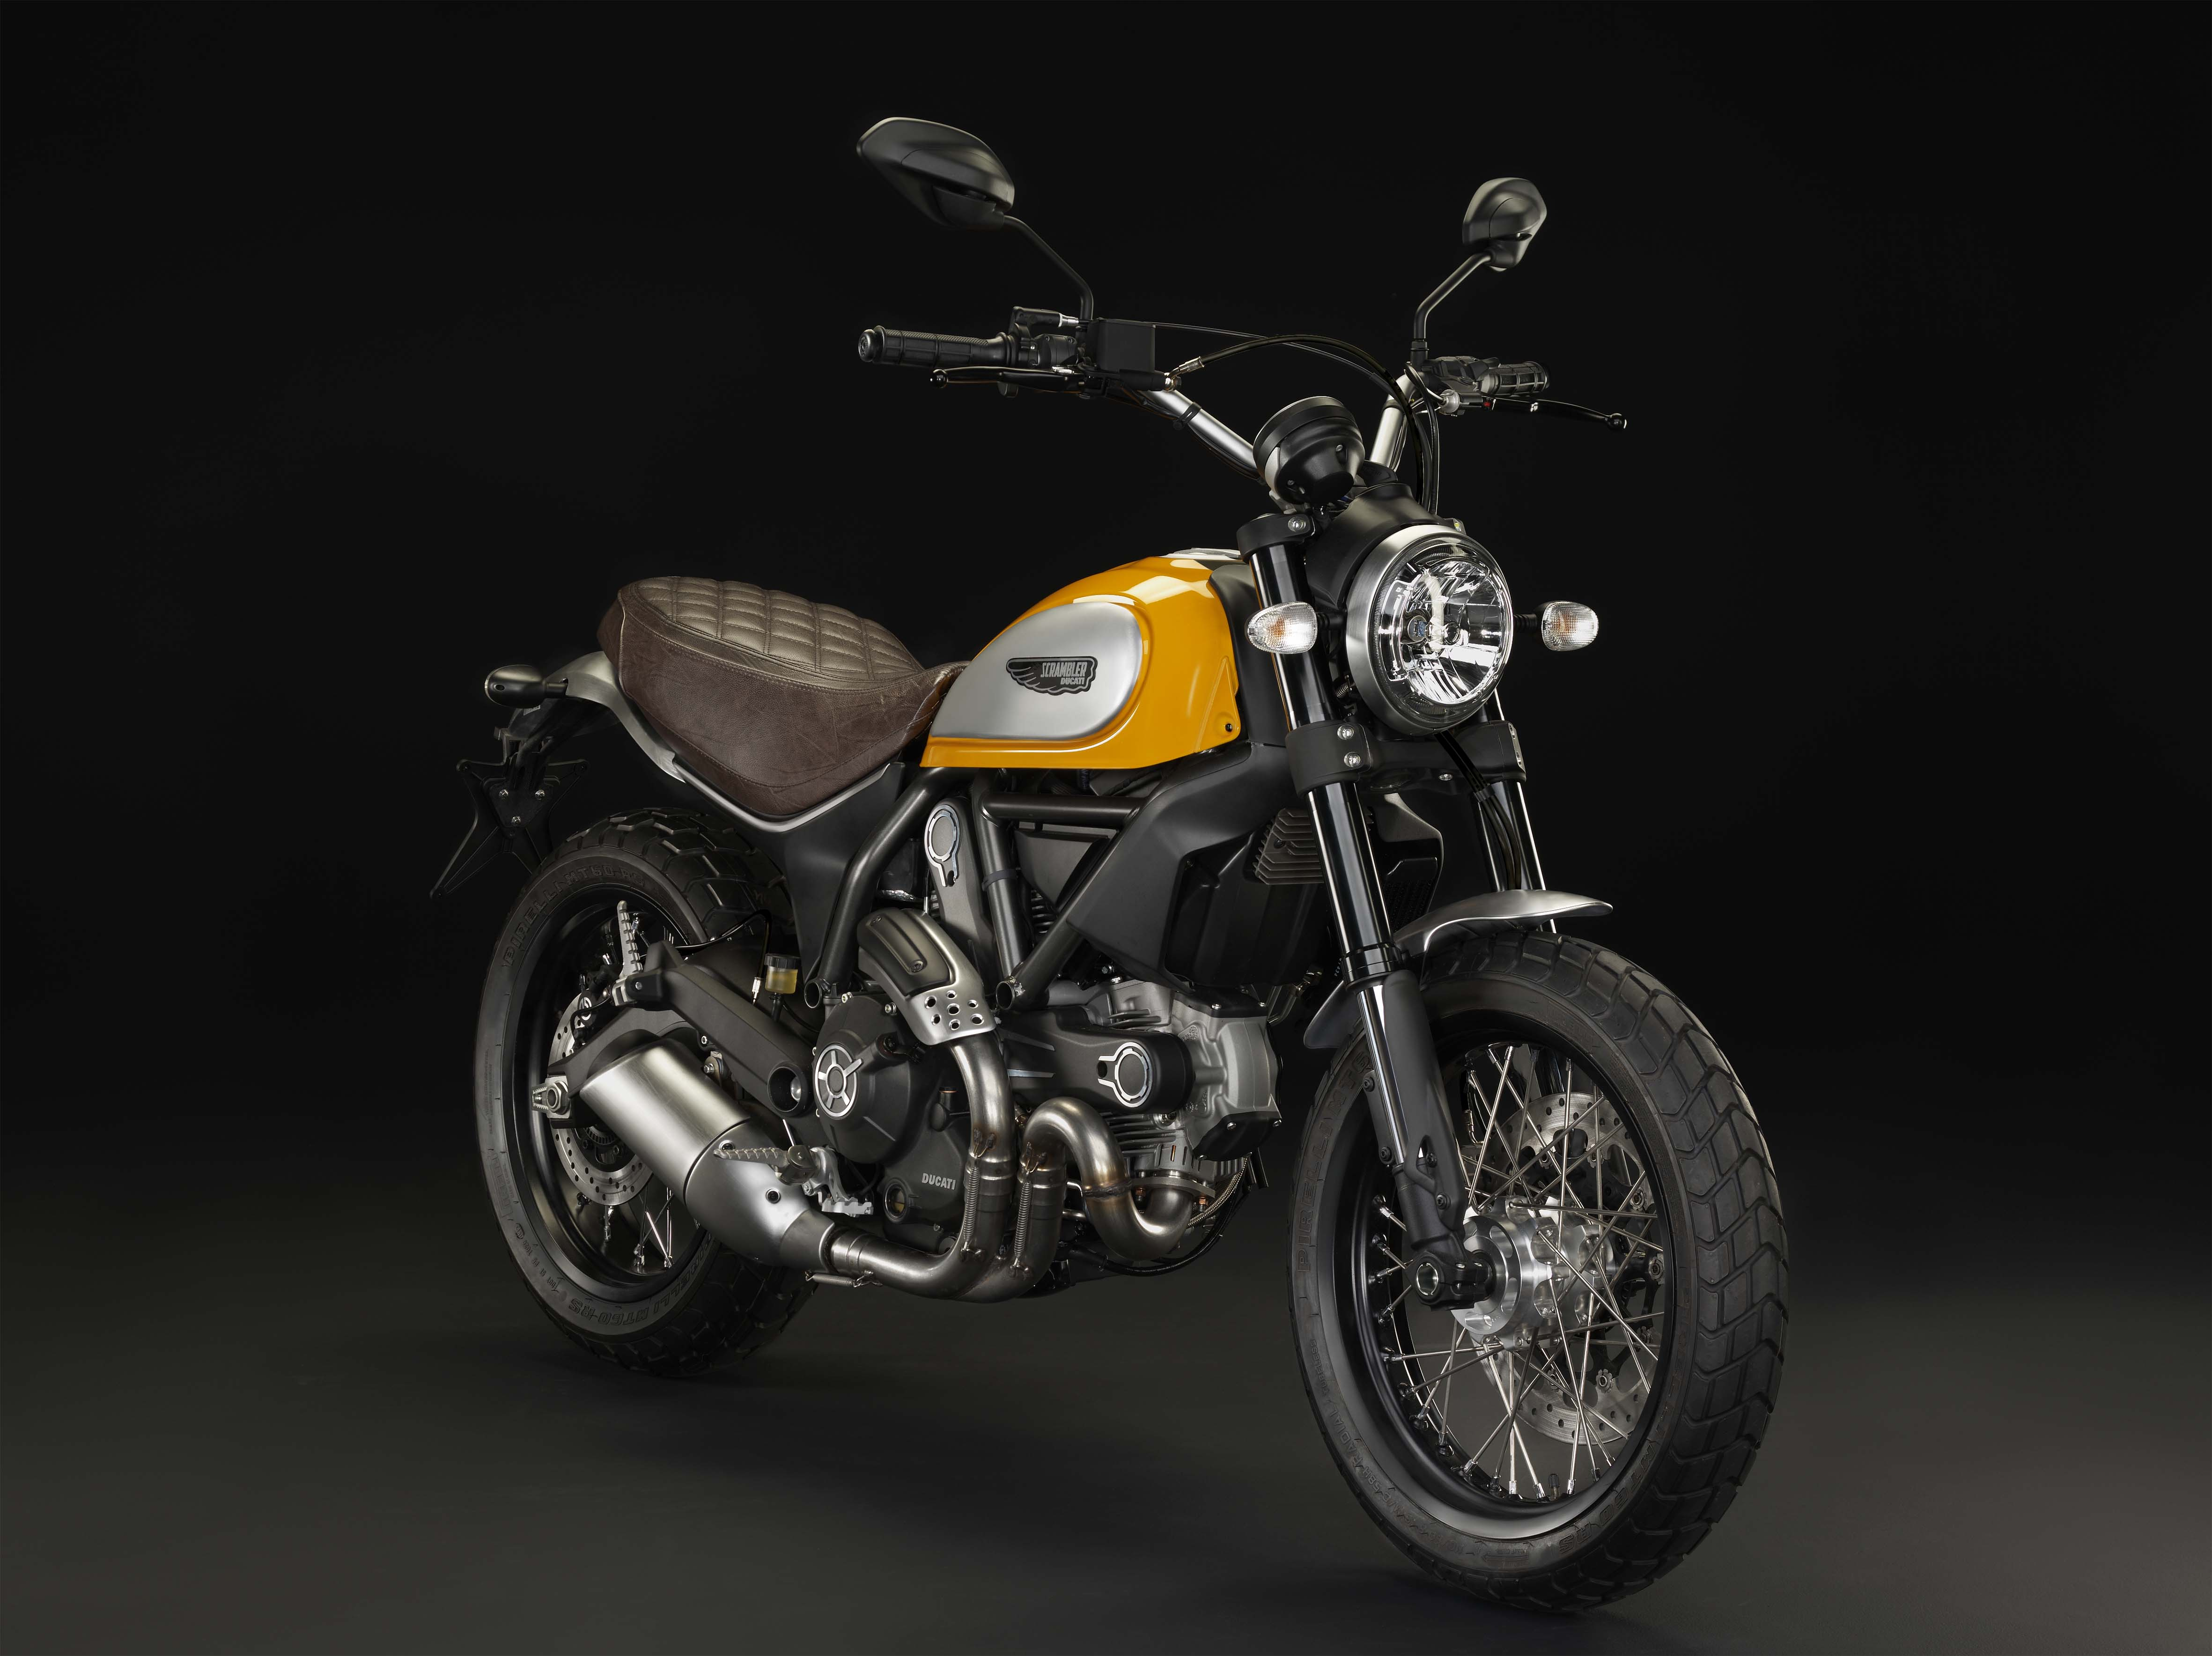 Ducati Scrambler - For New Riders, Off-Roaders, & Hipsters ...